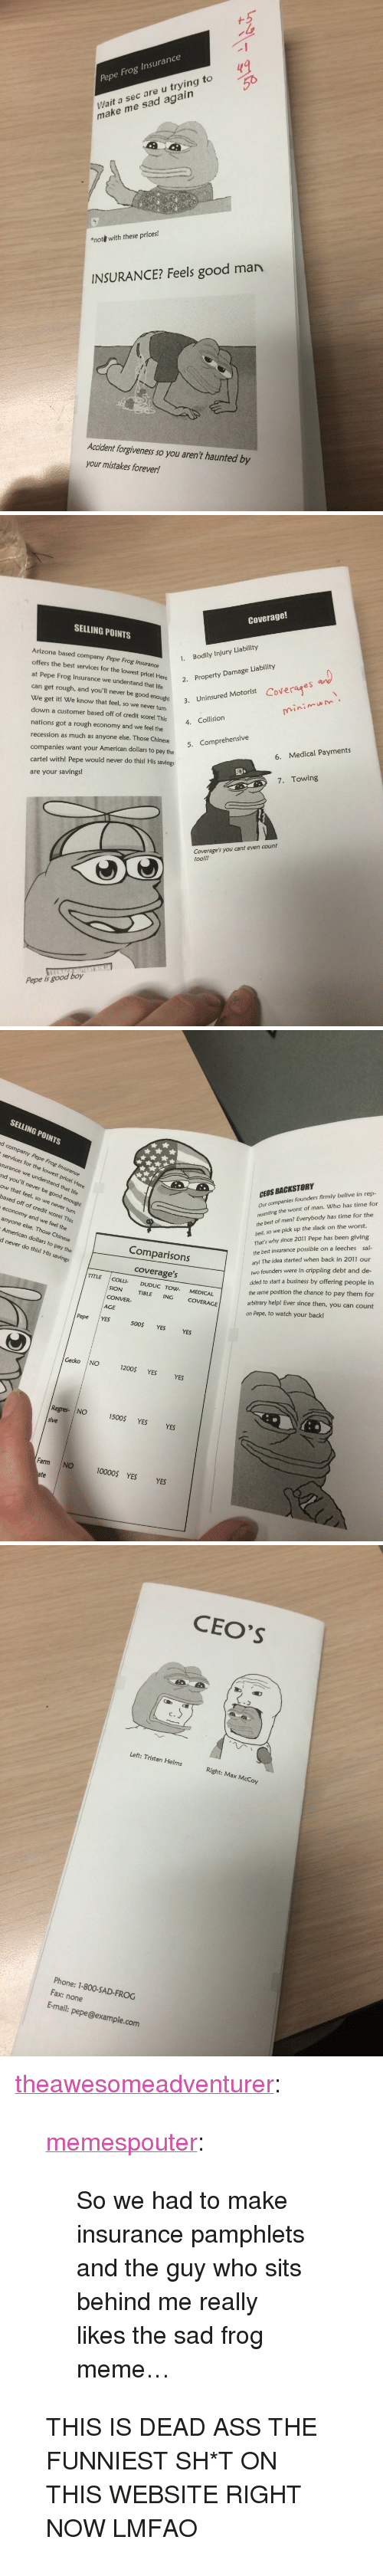 """Life, Meme, and Phone: Pepe Frog Insurance  Wait a sec are u trying to  make me sad agairn  """"not  with these prices!  INSURANCE? Feels good man  Accident forgiveness so you aren't haunted by  your mistakes forever!   Coverage!  SELLING POINTS  Arlzona based company Pepe Frog Insurance  offers the best services for the lowest pricel H  at Pepe Frog Insurance we understand that life  can get rough, and you'll never be good enough! 3. Uni  We get it! We know that feel, so we never turn  down a customer based off of credit score! This collision  nations got a rough economy and we feel the  recession as much as anyone else. Those Chinese 5  companies want your American dollars to pay the  cartel with! Pepe would never do this! His savings  are your savings!  1.  Bodily Injury Liability  2. Property Damage Liability  Coverae  Uninsured Motorist  nini  6. Medical Payments  7. Towing  Coverage's you cant even count  tool!!  Pepe is good boy   SELLING POINTS  d company Pepe Frog  CEOS BACKSTORY  Our companies founders firmly belive in rep-  resenting the worst of man. Who has time for  the best of men? Everybody has time for the  services for the lowest price! Here  surance we understand that life  nd you'll never be good enough!  ow that feel, so we never turn  based off of credit score! This  economy and we feel the  anyone else. Those Chinese  American dollars to pay the  d never do this! His savings  best,  That's why since 2011 Pepe has been giving  the best insurance possible on a leeches sal-  ary! The idea started when back in 2011 our  two founders were in crippling debt and de-  cided to start a business by offering people in  the same position the chance to pay them for  arbitrary help! Ever since then, you can count  on Pepe, to watch your back!  so we pick up the slack on the worst.  Comparisons  coverages  TITLE COLLI DUDUC TOW  MEDICAL  SION TIBLE ING COVERAGE  CONVER  AGE  Pepe YES  500$ YES  YES  Gecko NO  1200$ YES  YES  Regres- NO 500 YES YES  sive  Farm N"""